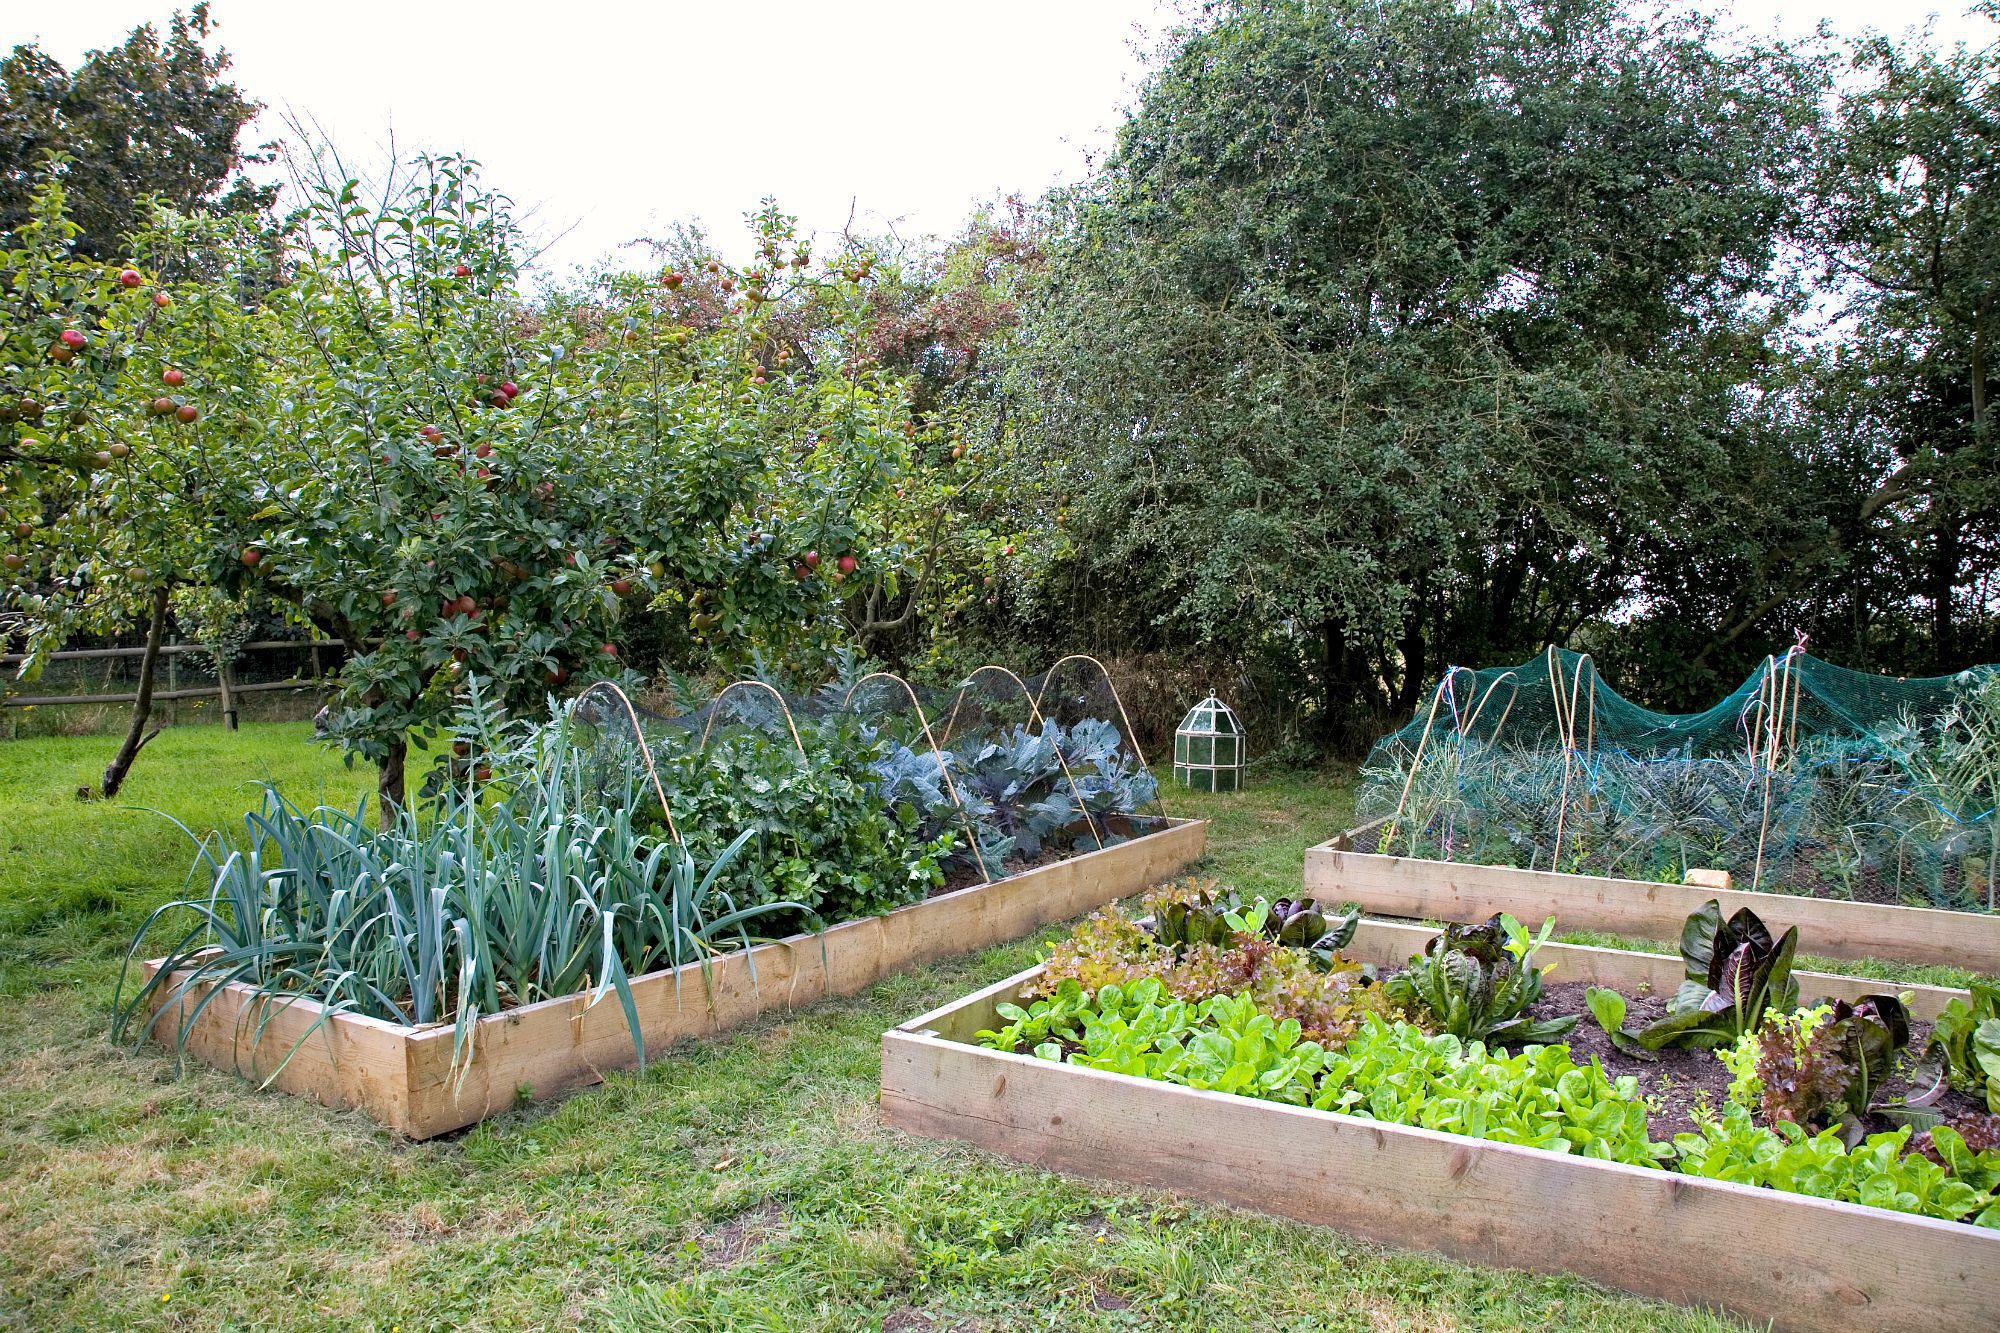 Tips for Building a LowMaintenance Raised Bed